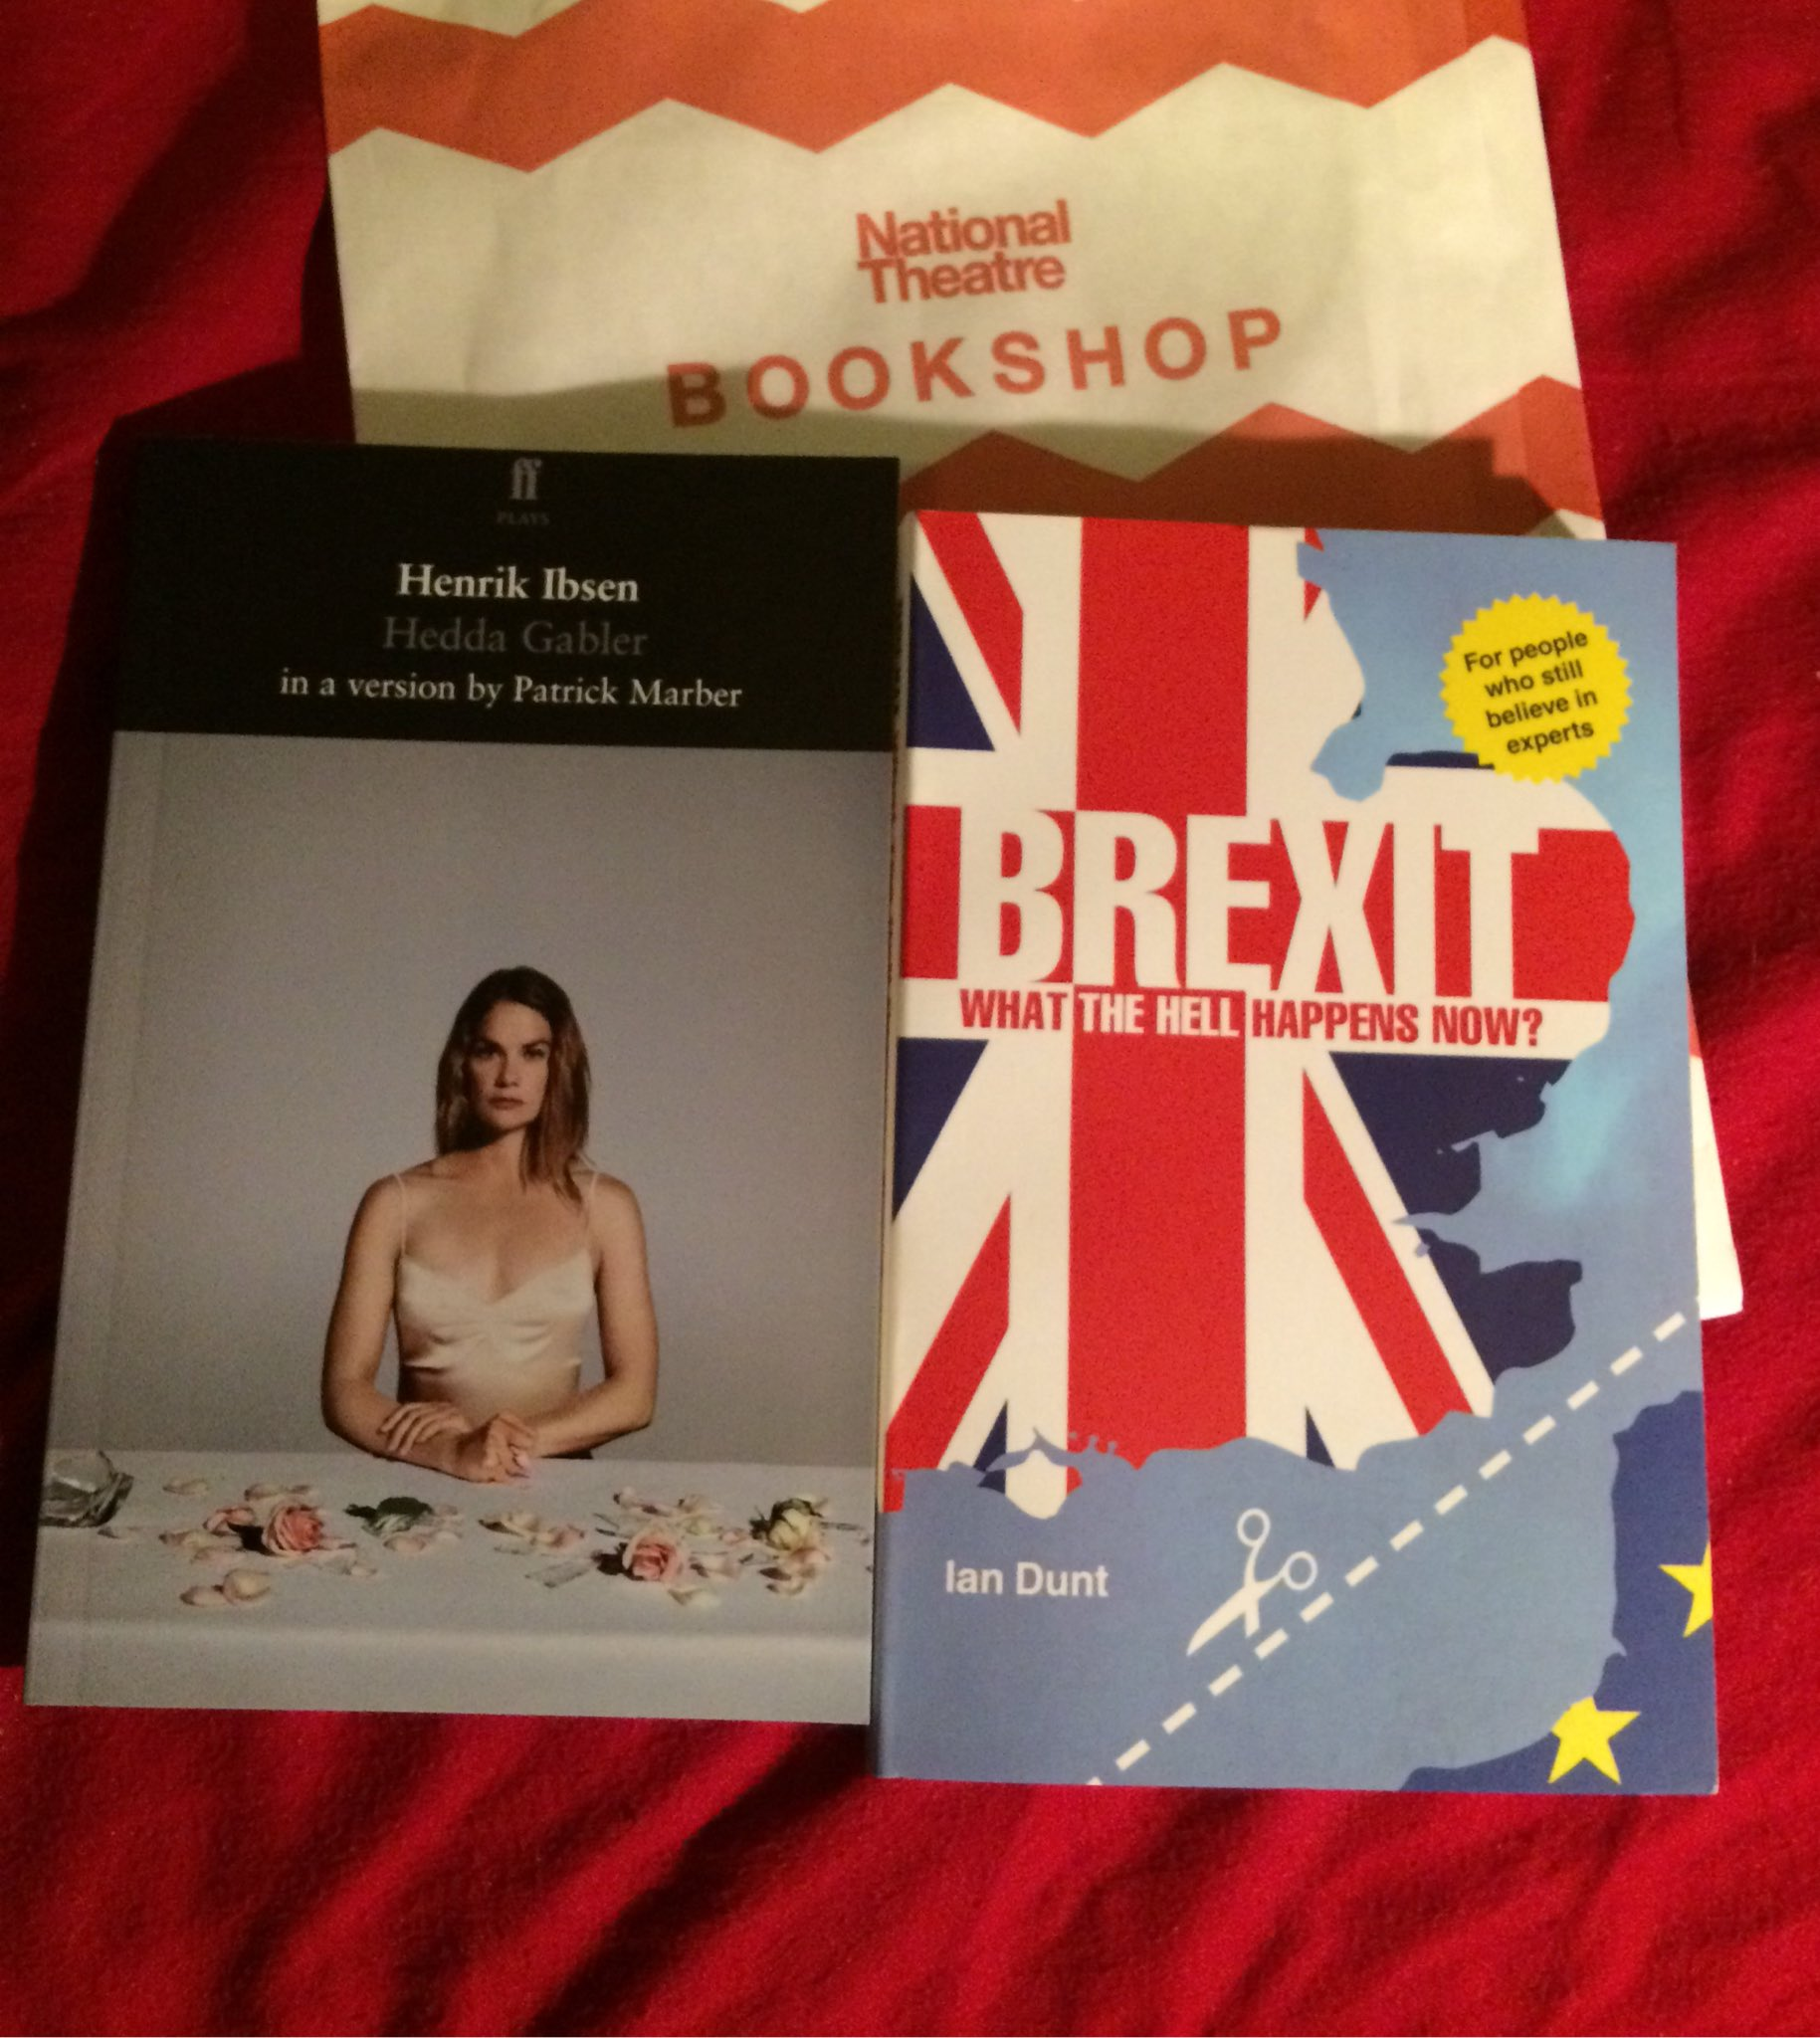 Saw excellent #HeddaGabbler @nationaltheatre bought @iandunt #brexit book & play text. Buying thematically now https://t.co/eu7bD8SSgb